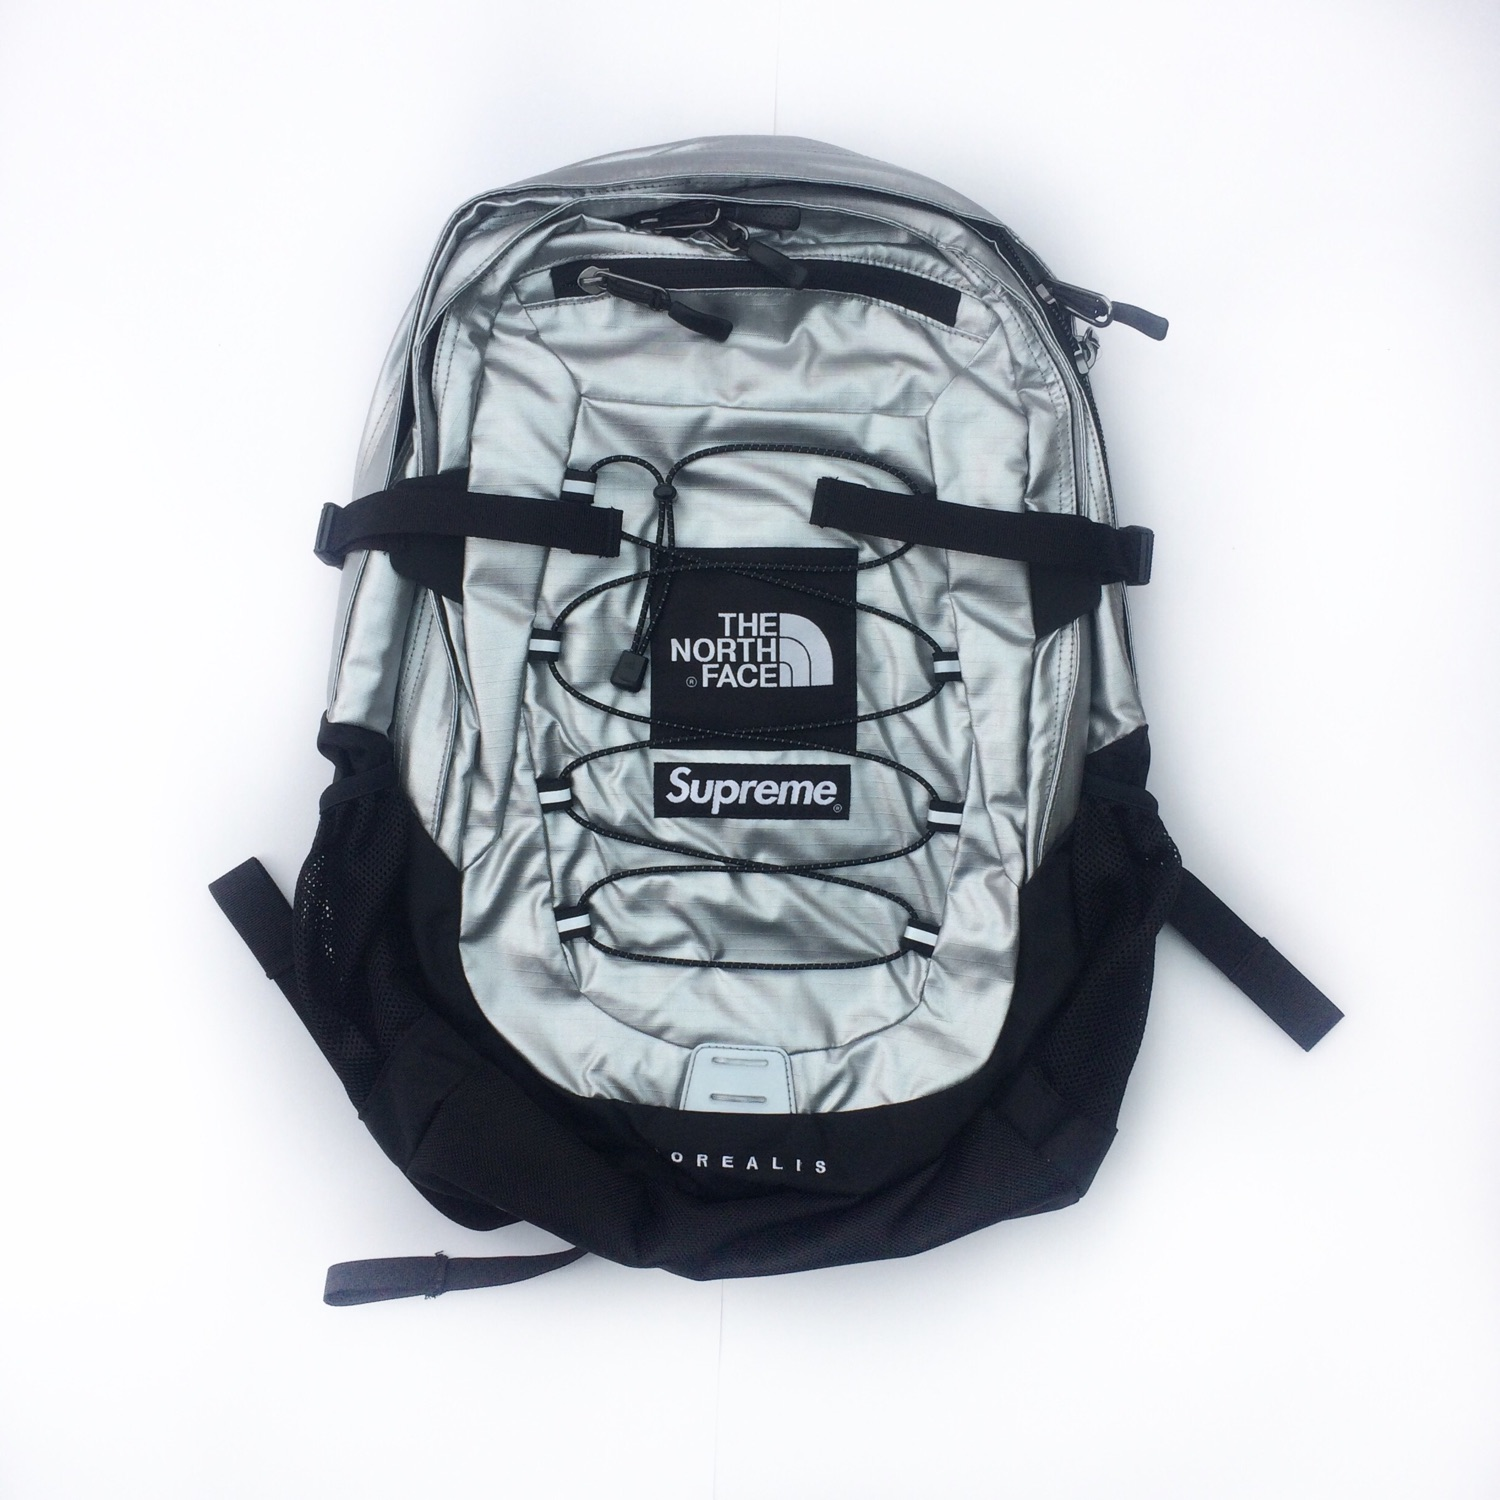 66c3758eb Supreme X The North Face Metallic Backpack